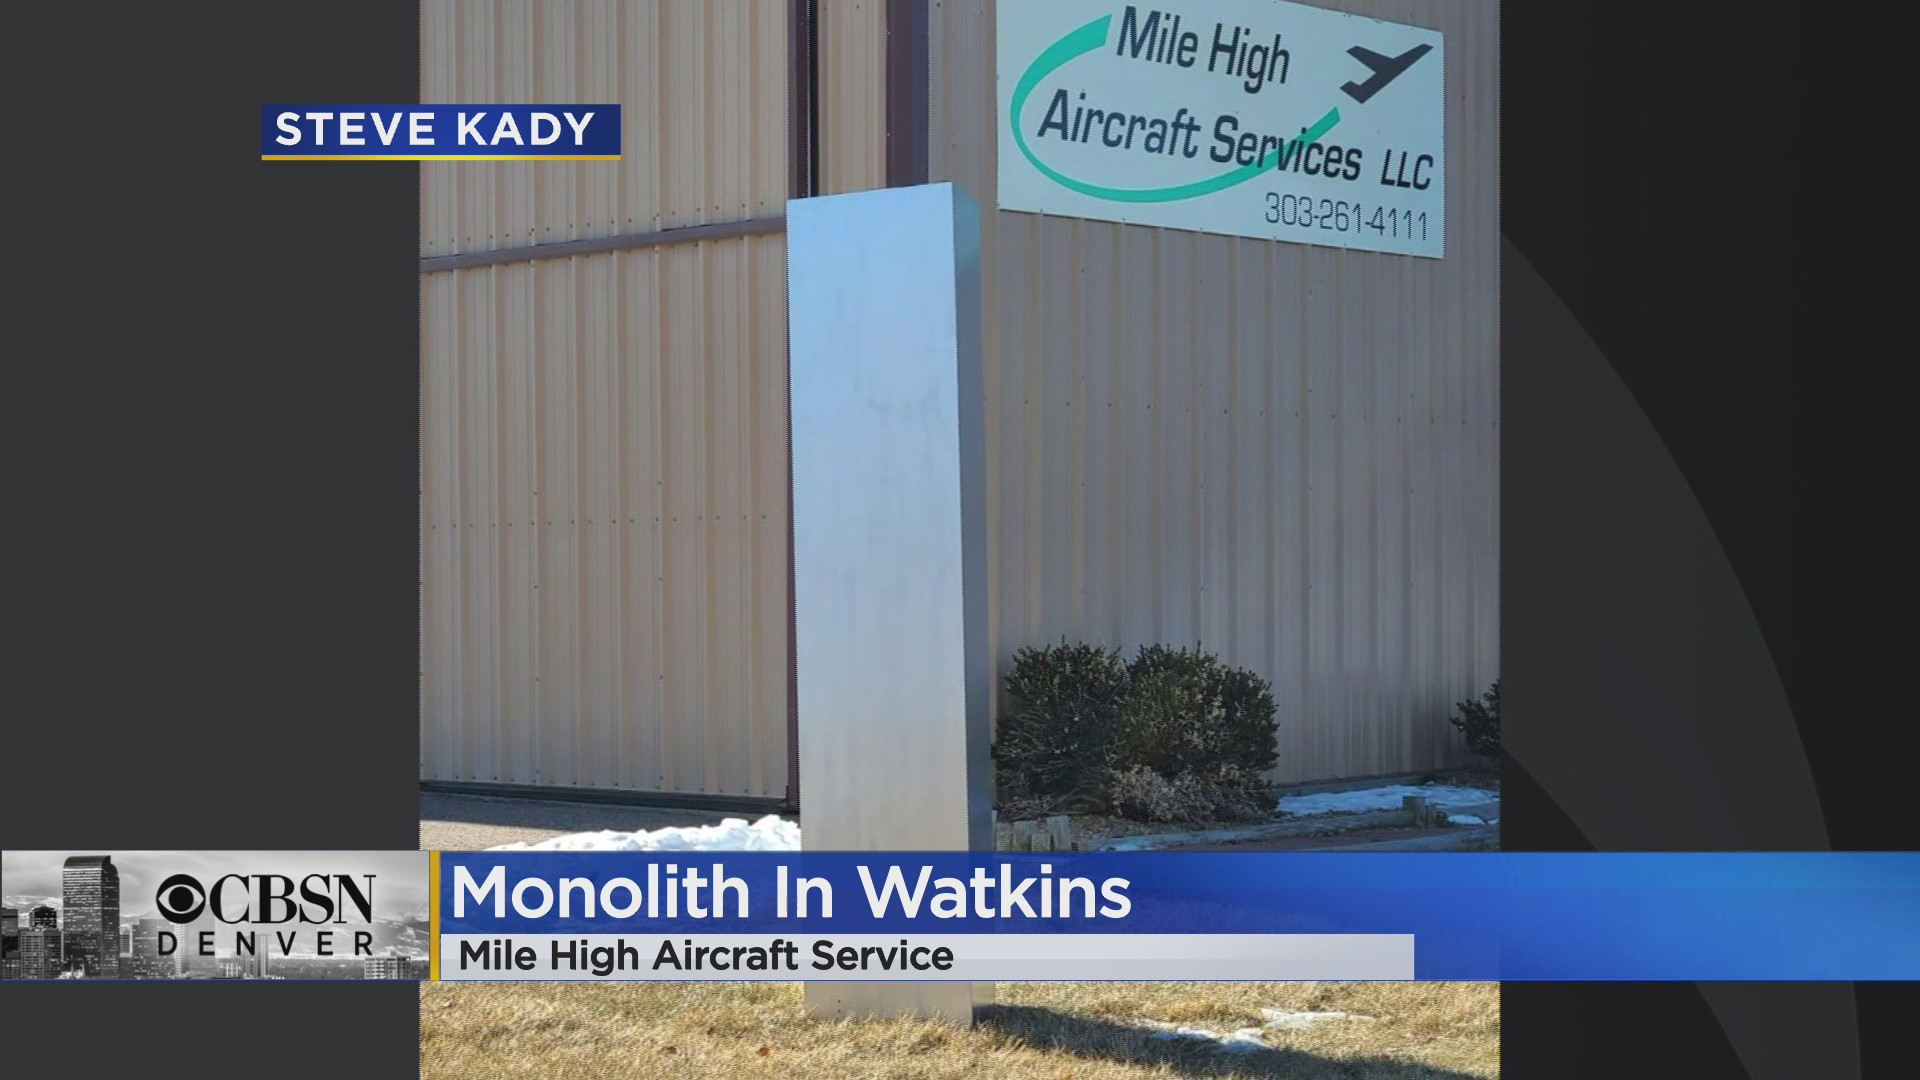 news.yahoo.com: Colorado Has Its Own Monolith In Watkins, There Is No Mystery Behind This One Though